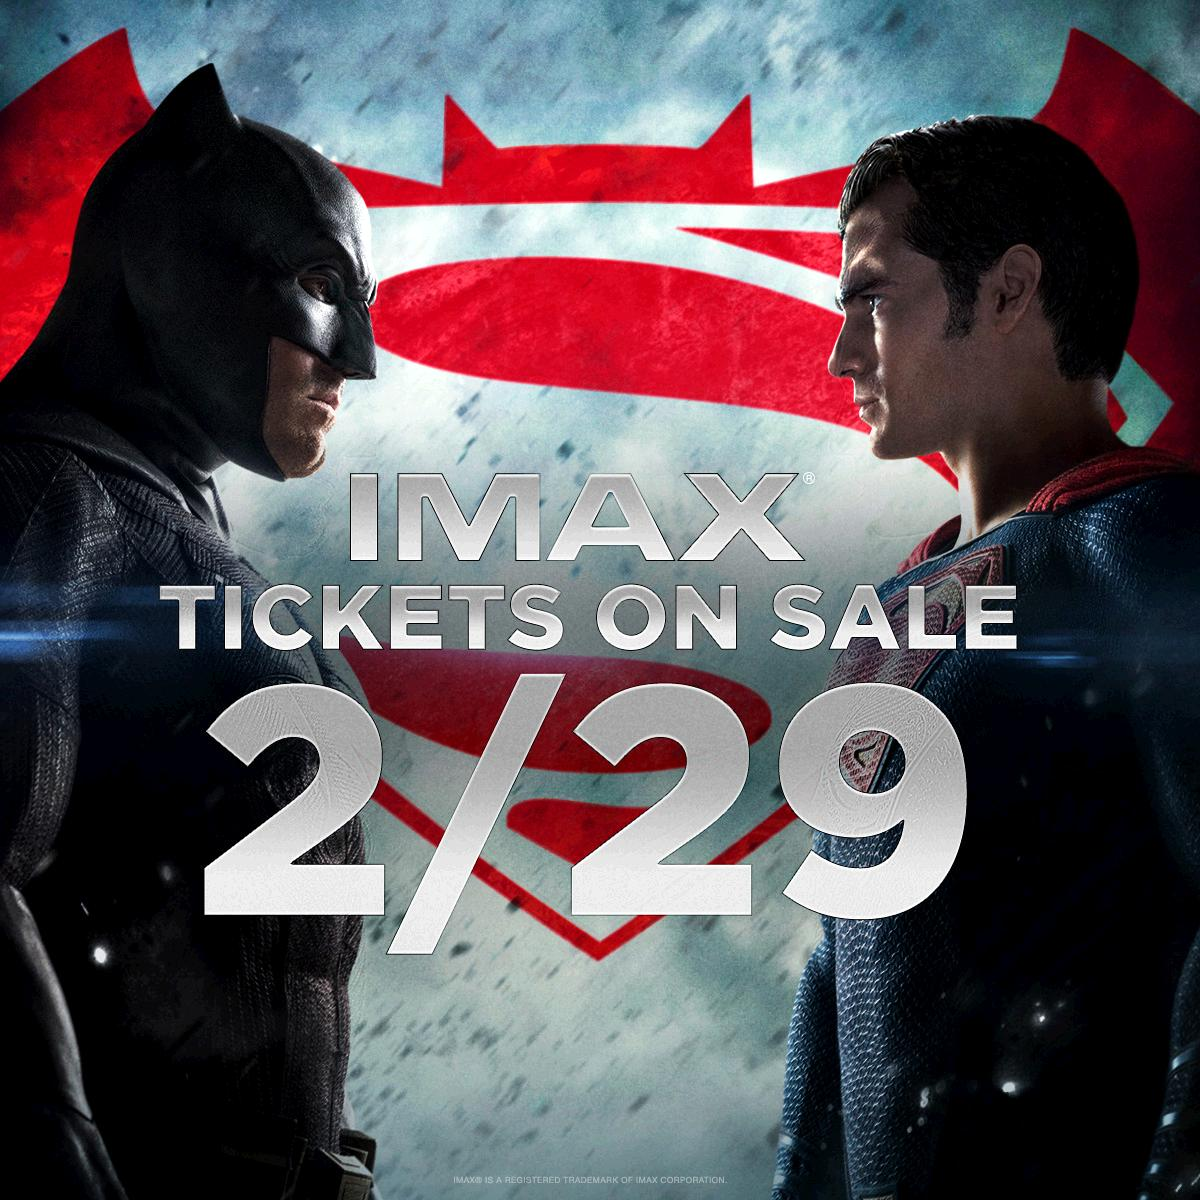 über Imax Cineplexx At: You Can See #batmanvsuperman In #imax, And Tickets Go On